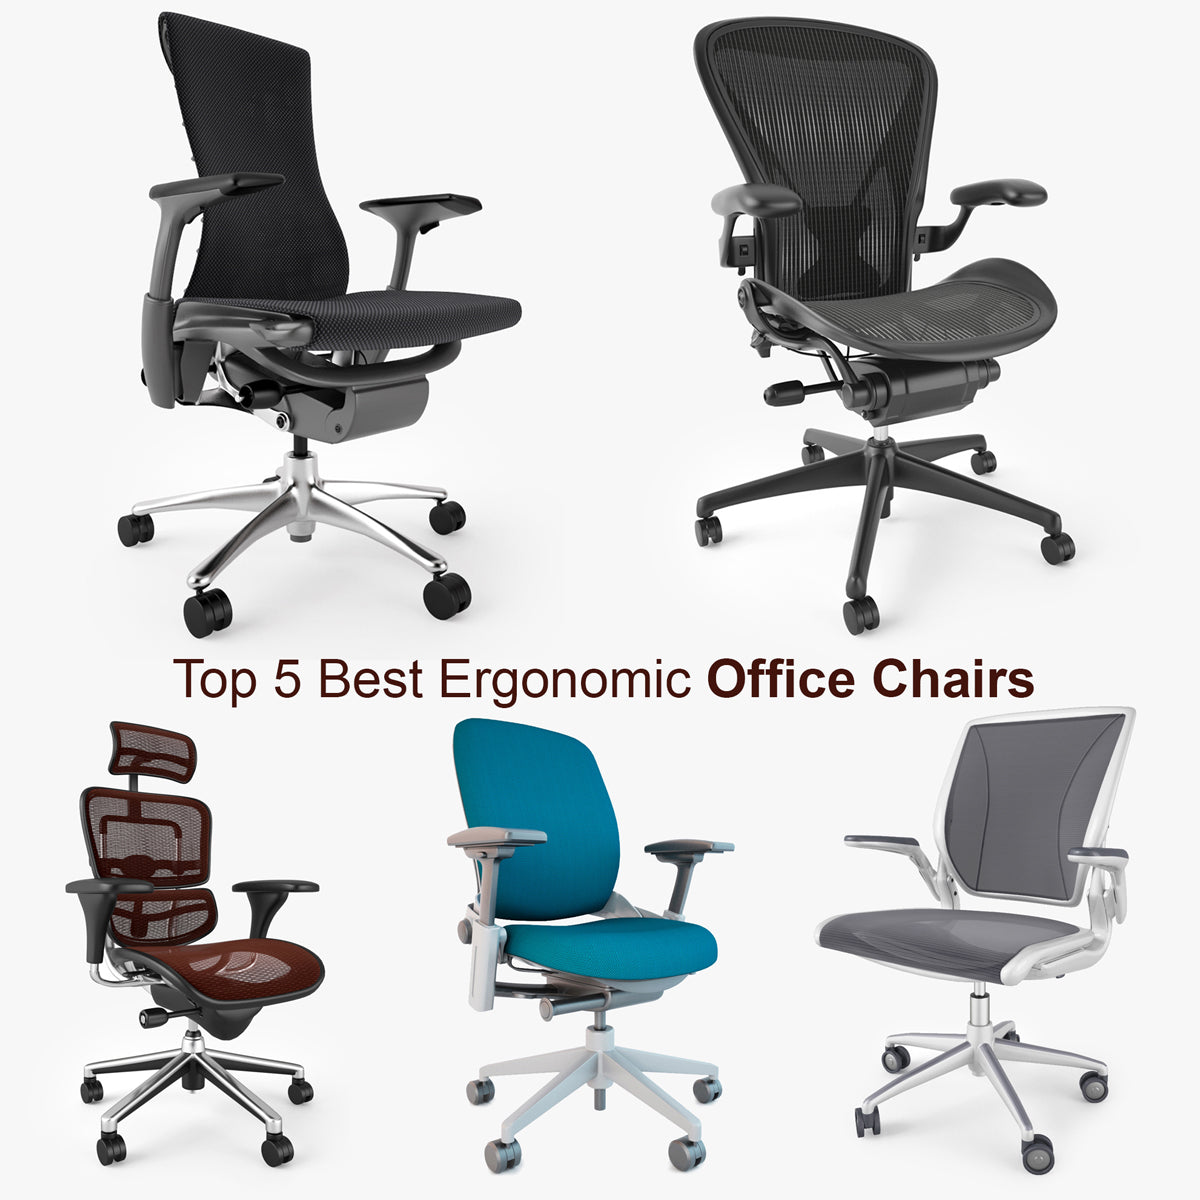 Top 344 Best Ergonomic Office Chairs 34D Model